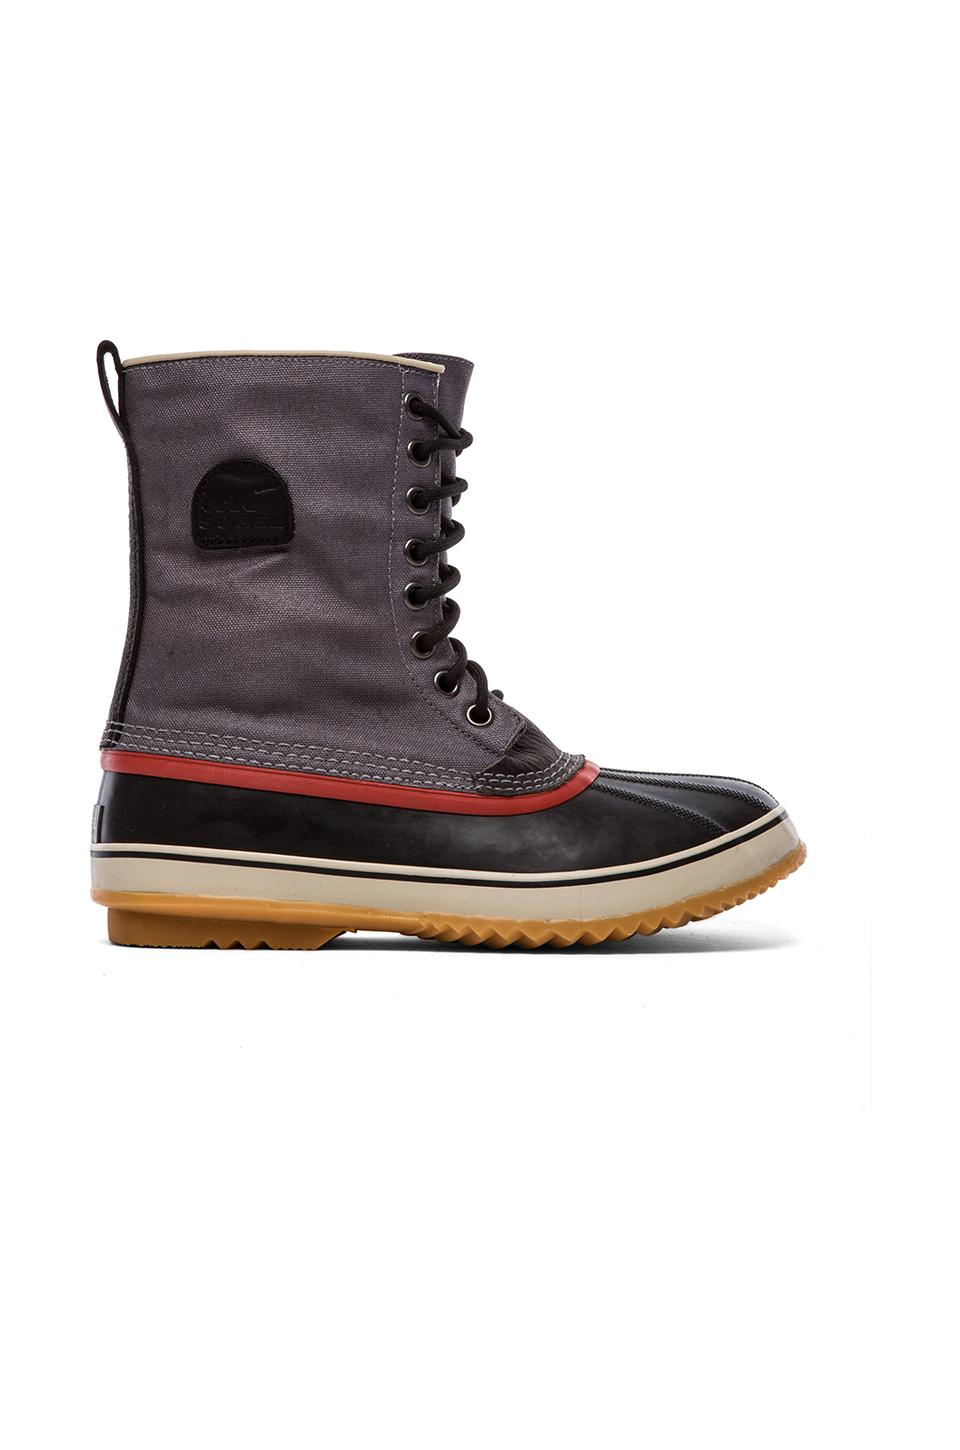 Sorel 1964 Premium T CVS in Charcoal/Black